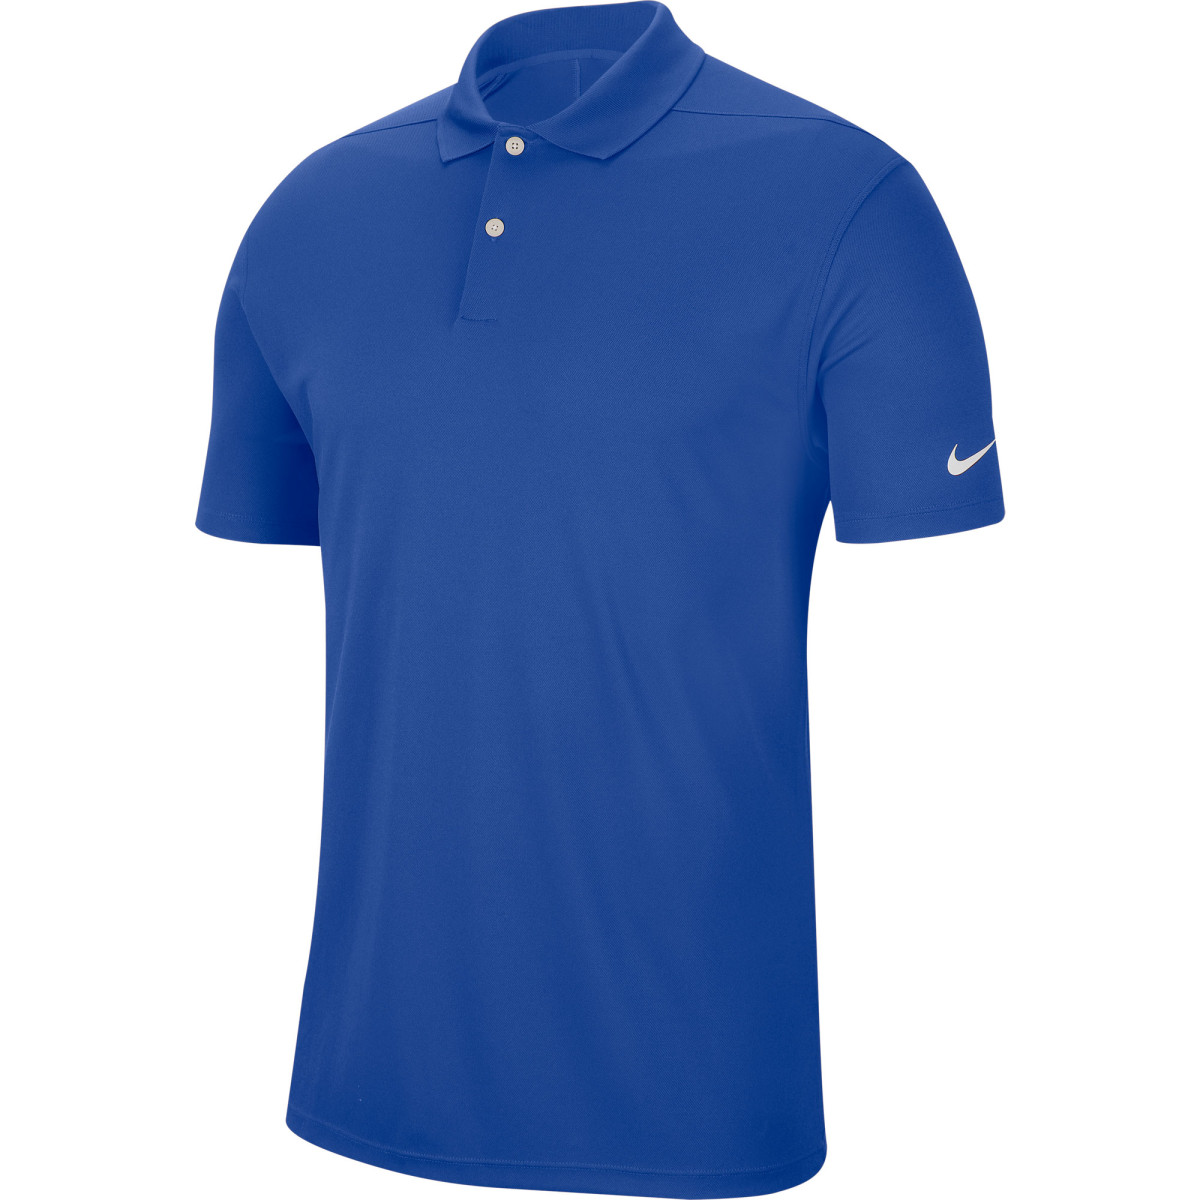 Nike Dry Solid Victory Polo